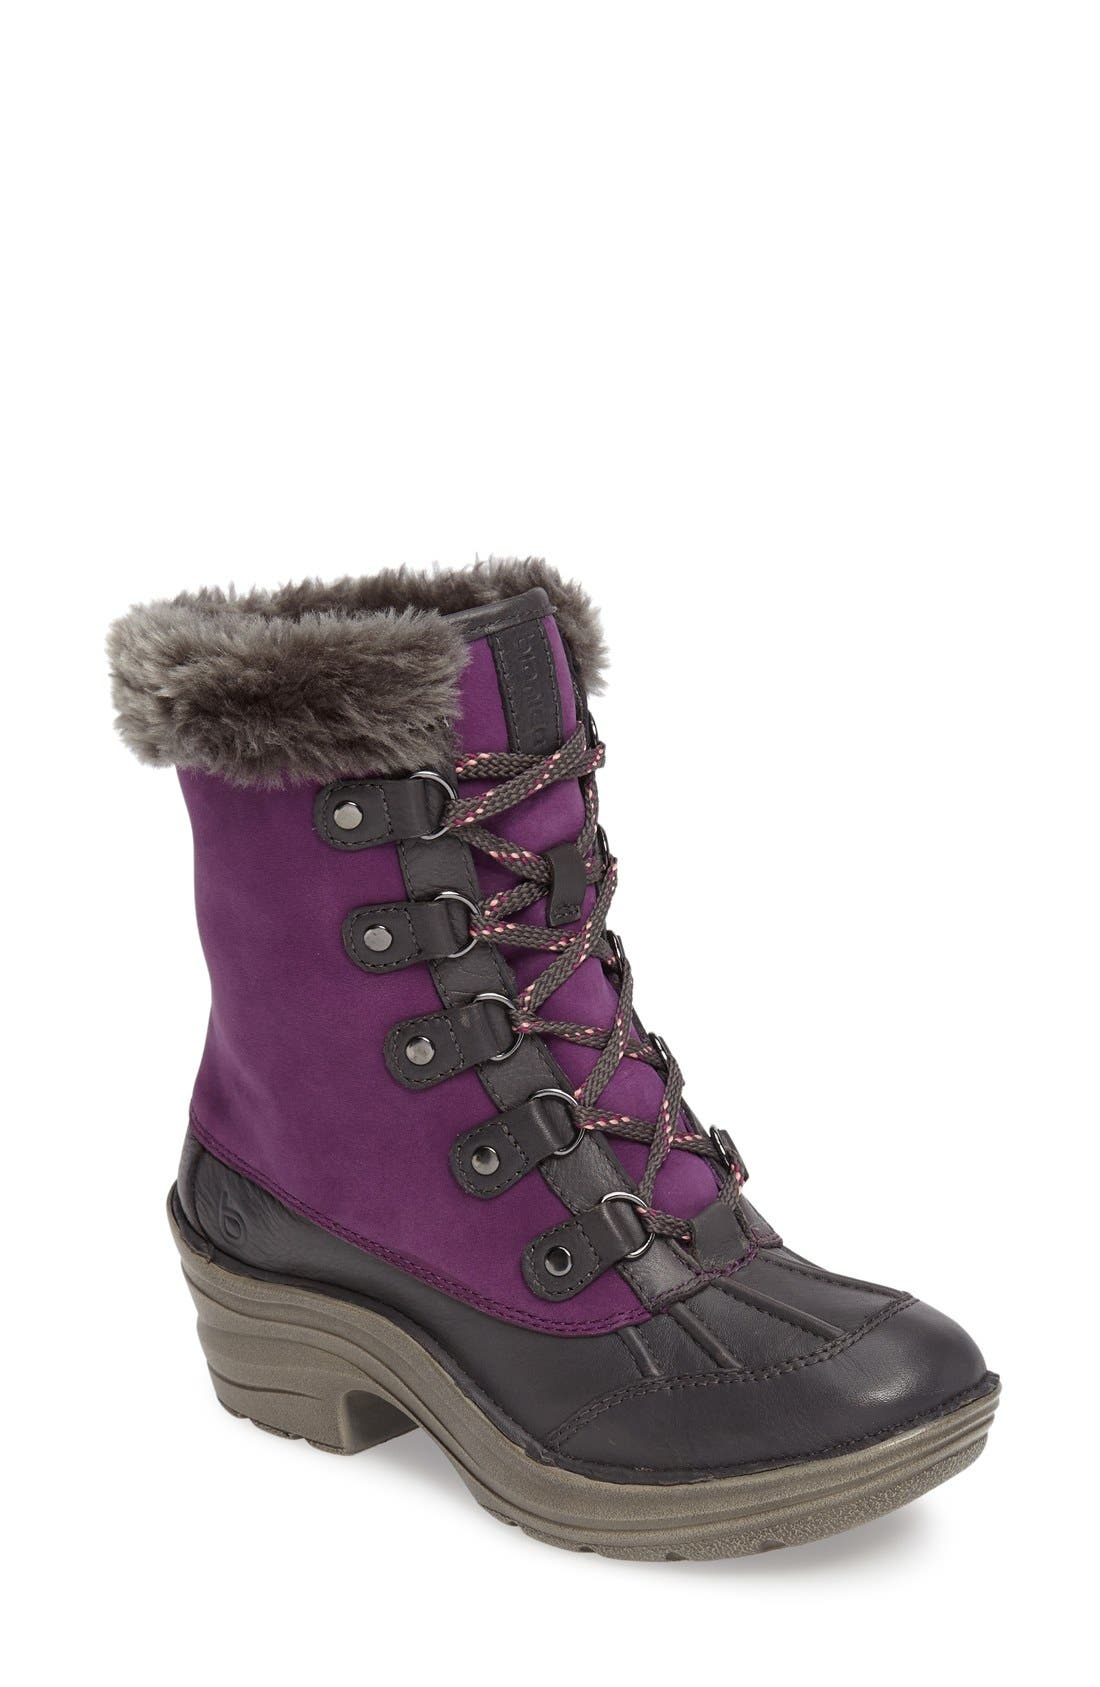 Rosemound Waterproof Boot,                             Main thumbnail 1, color,                             Purple/ Pewter Leather